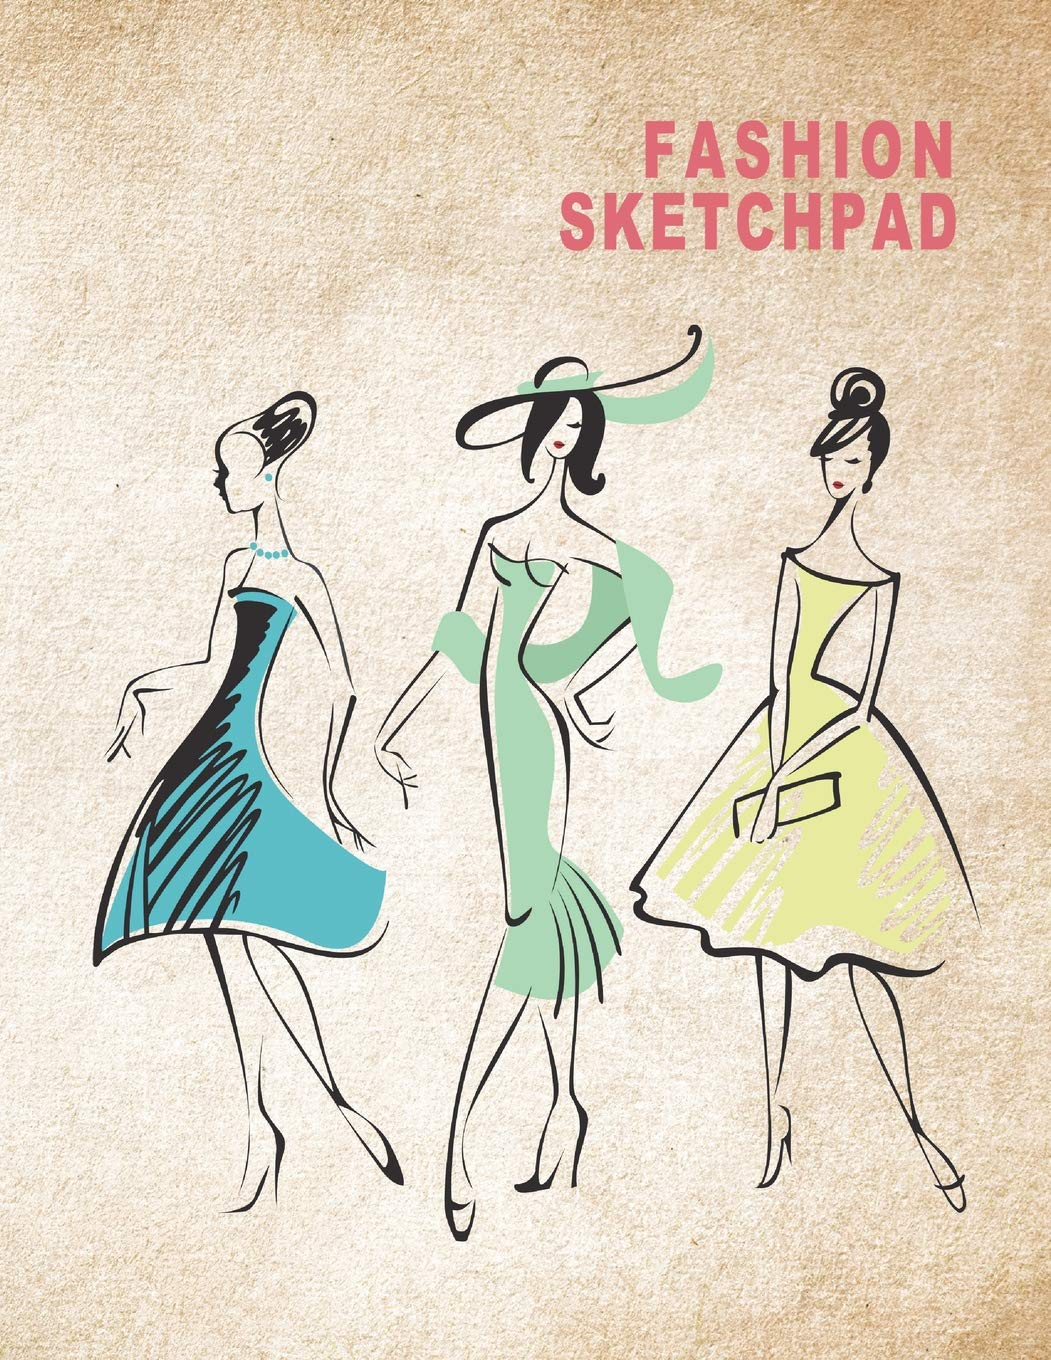 Amazon Com Fashion Sketchpad Women Figure Sketch Different Posed Template Will Easily Create Your Fashion Styles Fashion Sketch 9781983010316 Ahrendts Angel Books